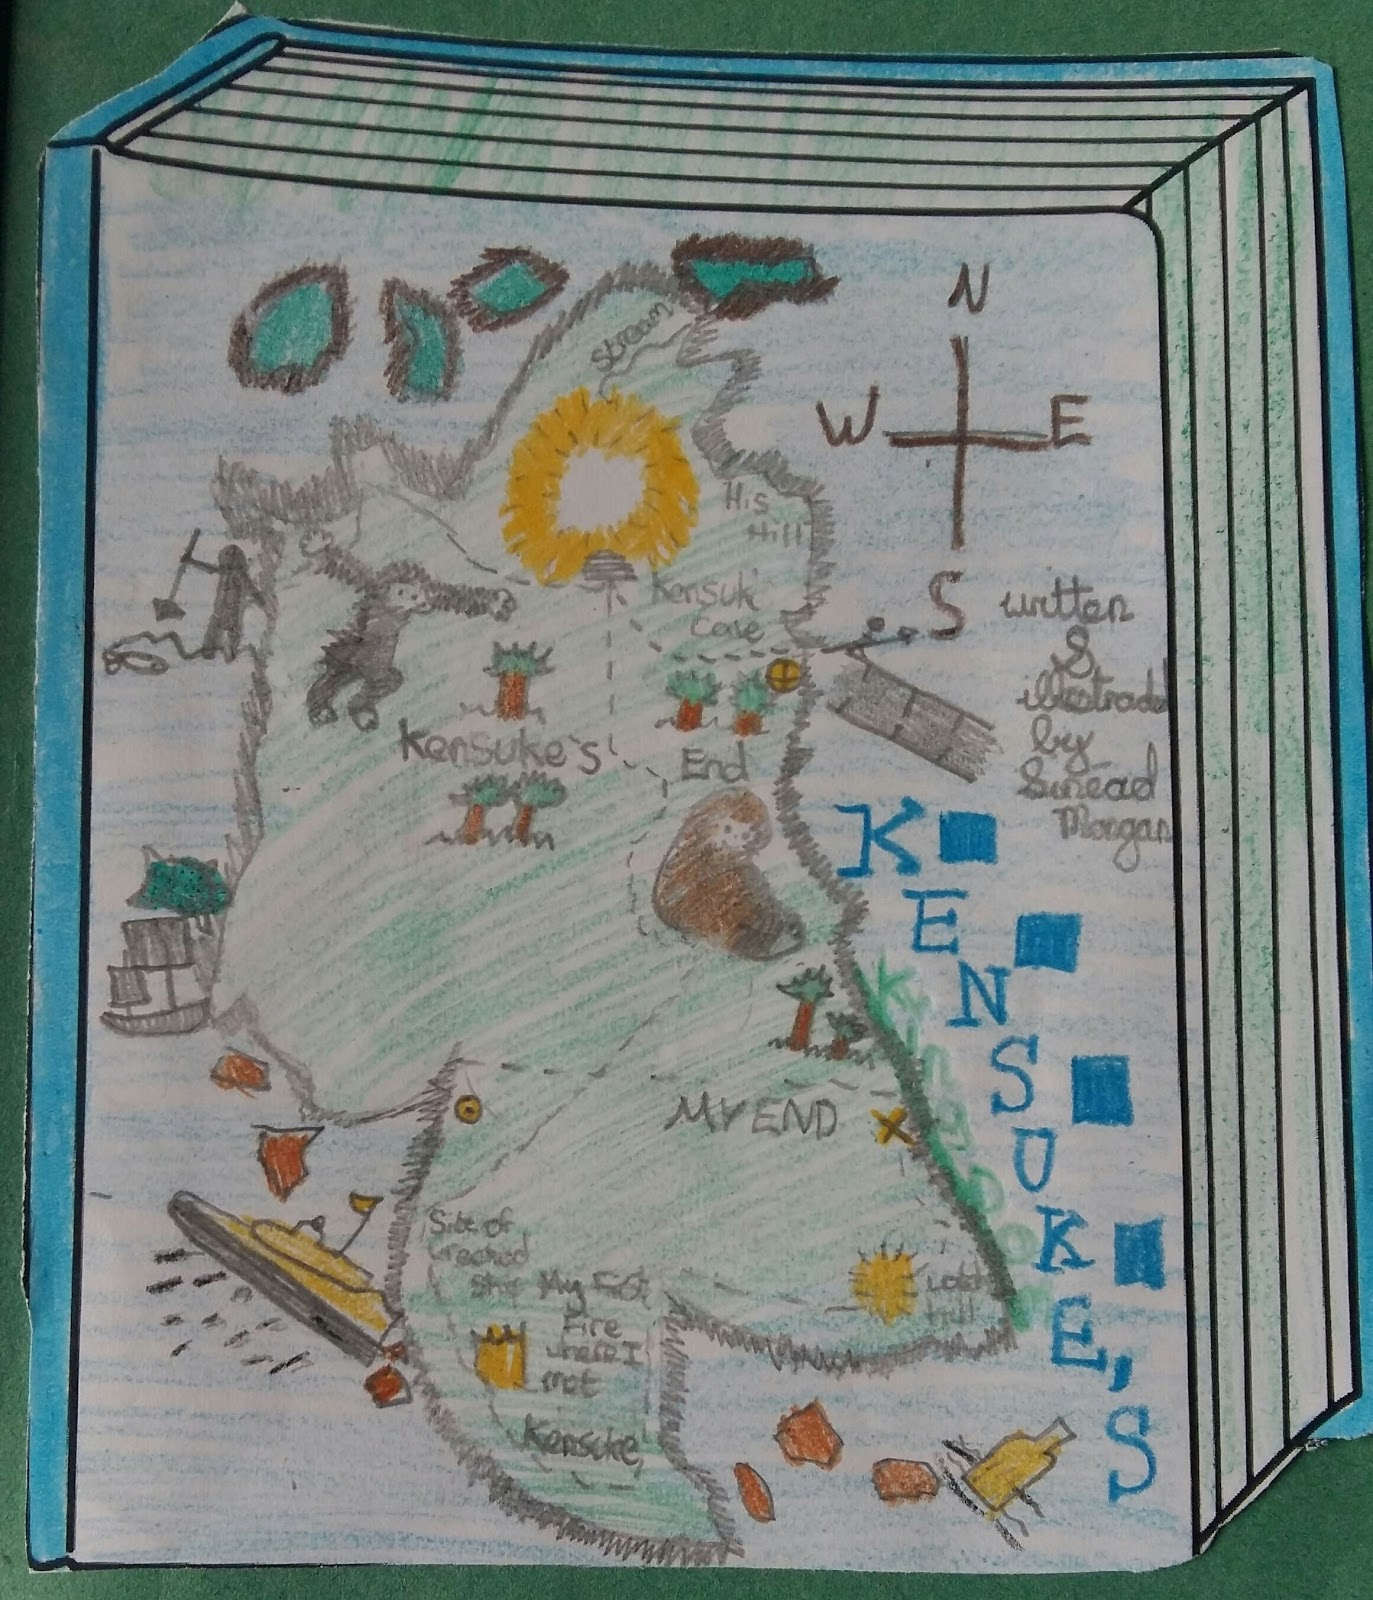 Ms fordes classroom novel ideas and activities it is a nice art activity to do i download a book cover template on card for them and we discuss the elements of an effective book cover gumiabroncs Choice Image